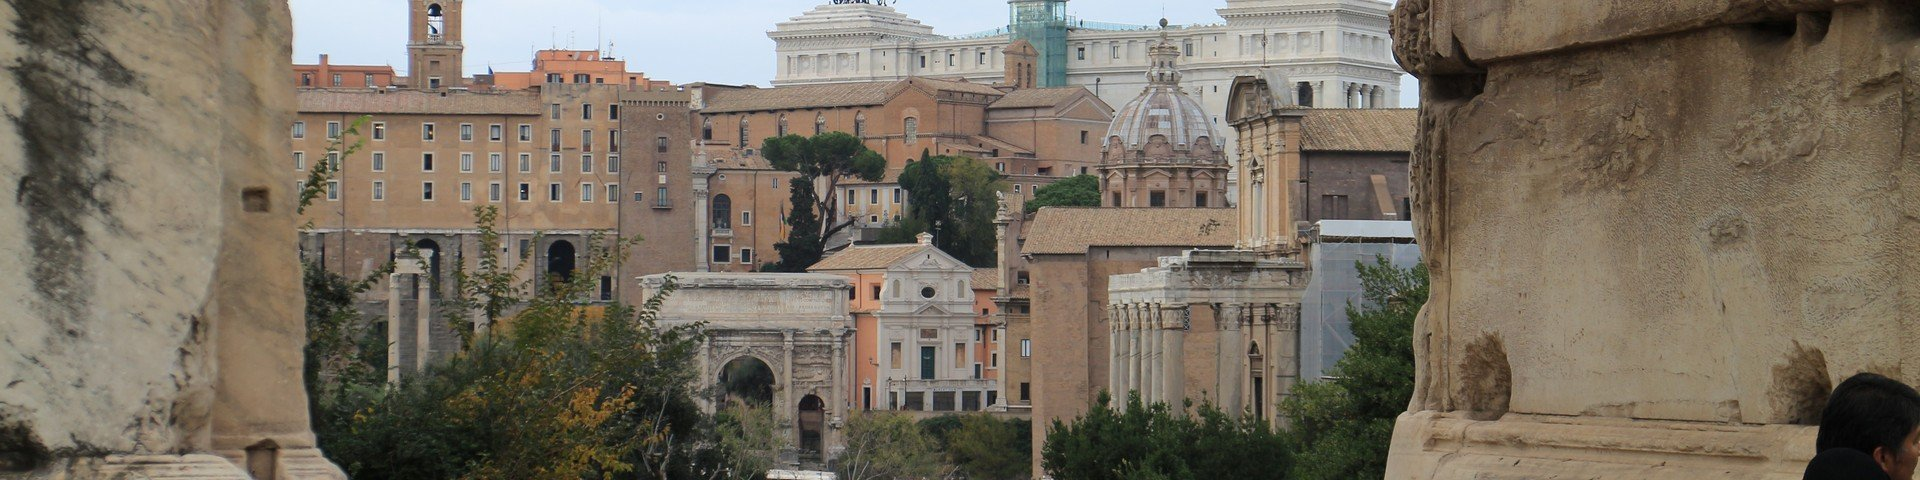 private tour guides rome